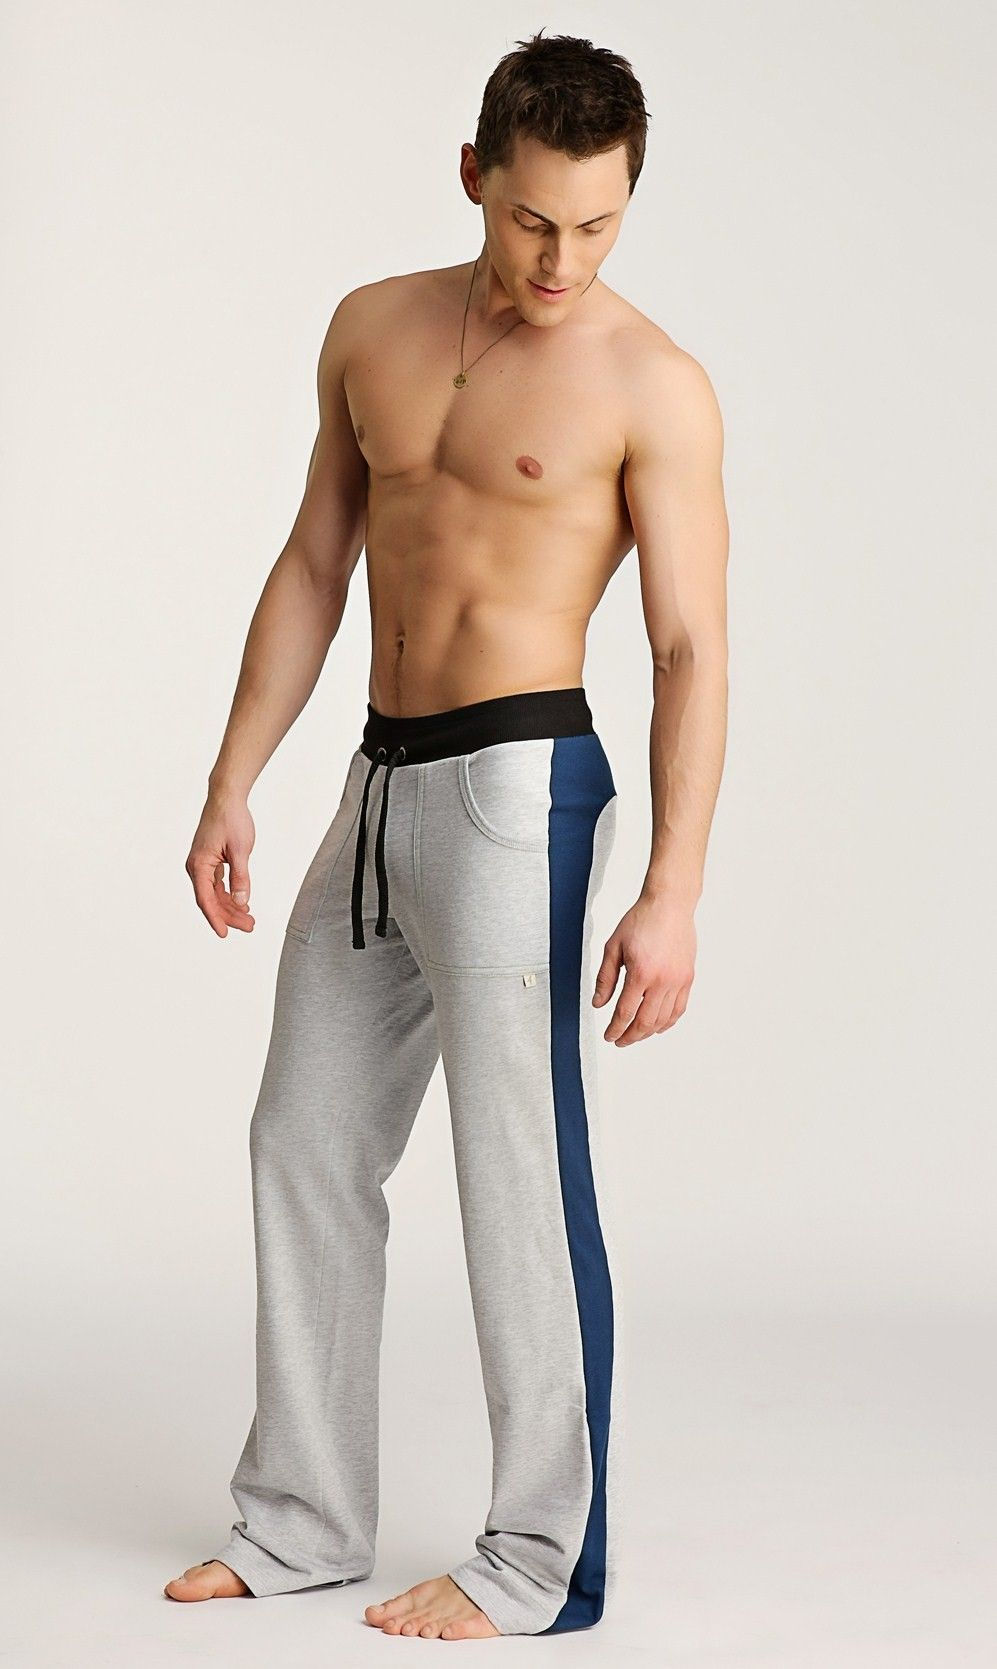 Workout Track Pant. Like #nike #bananarepublic. #FashioningChange ...